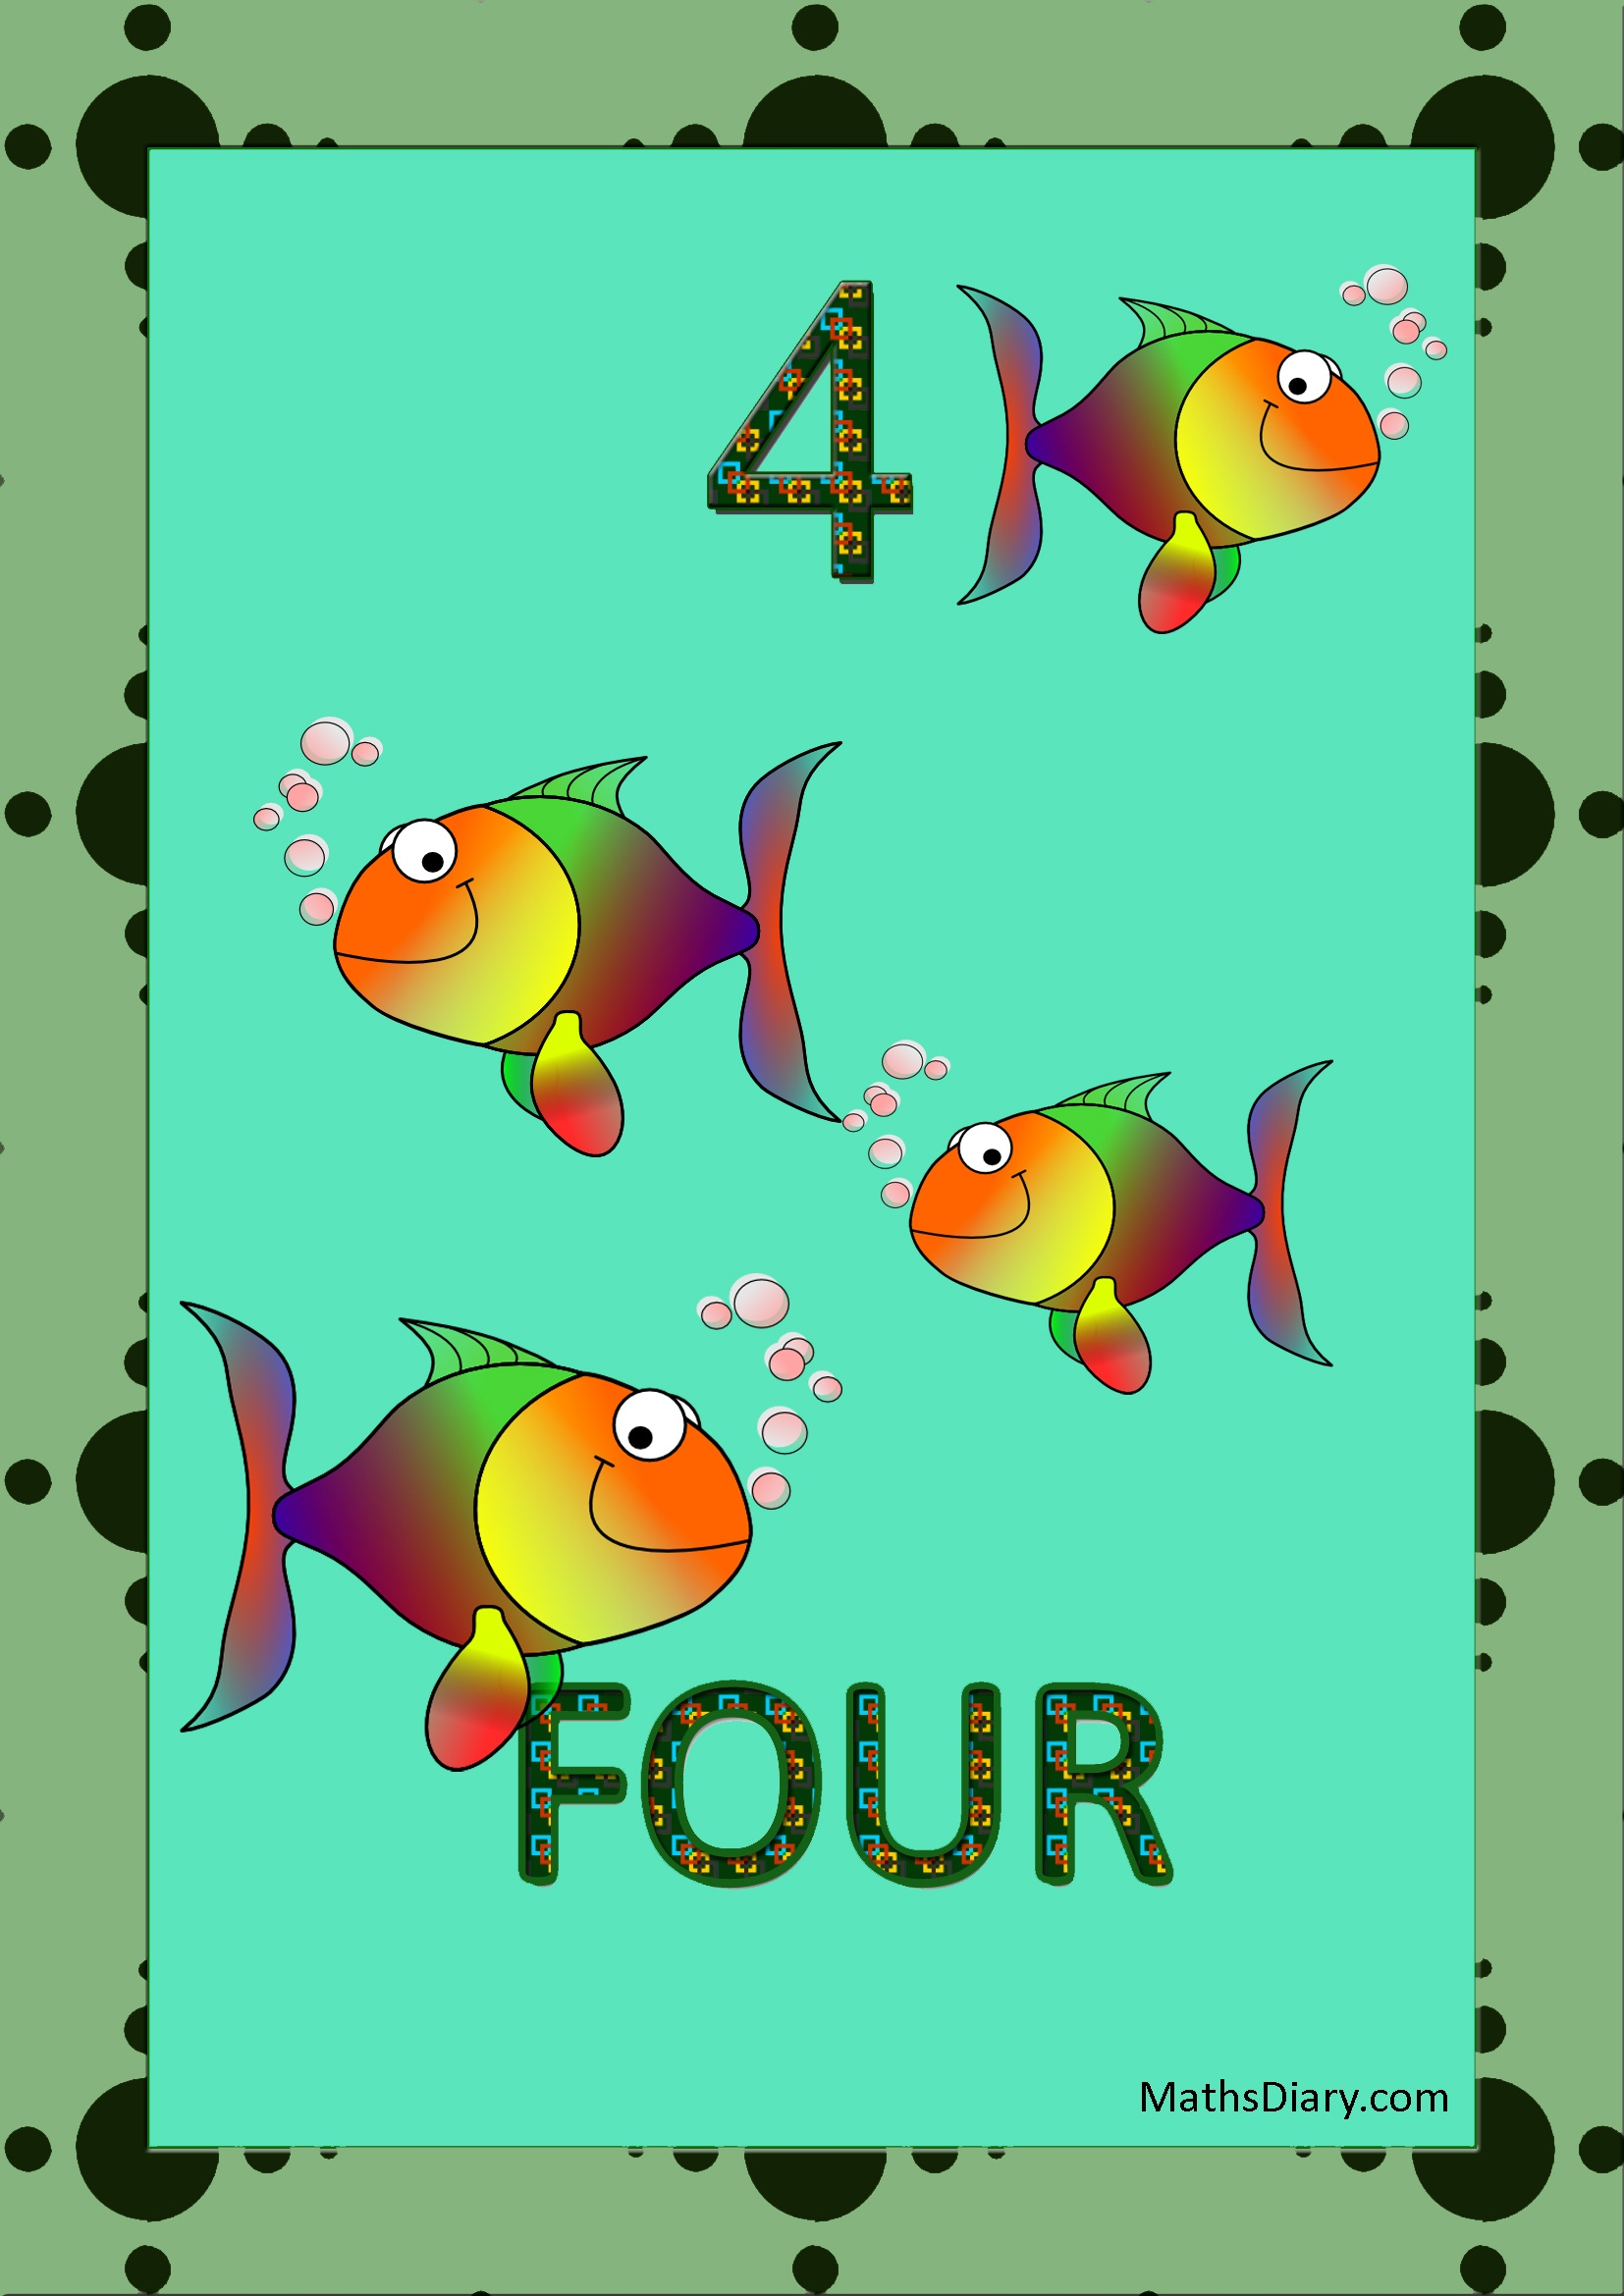 Learning Counting And Recognition Of Number 4 Worksheets Level 1 Help Sheets Part 2